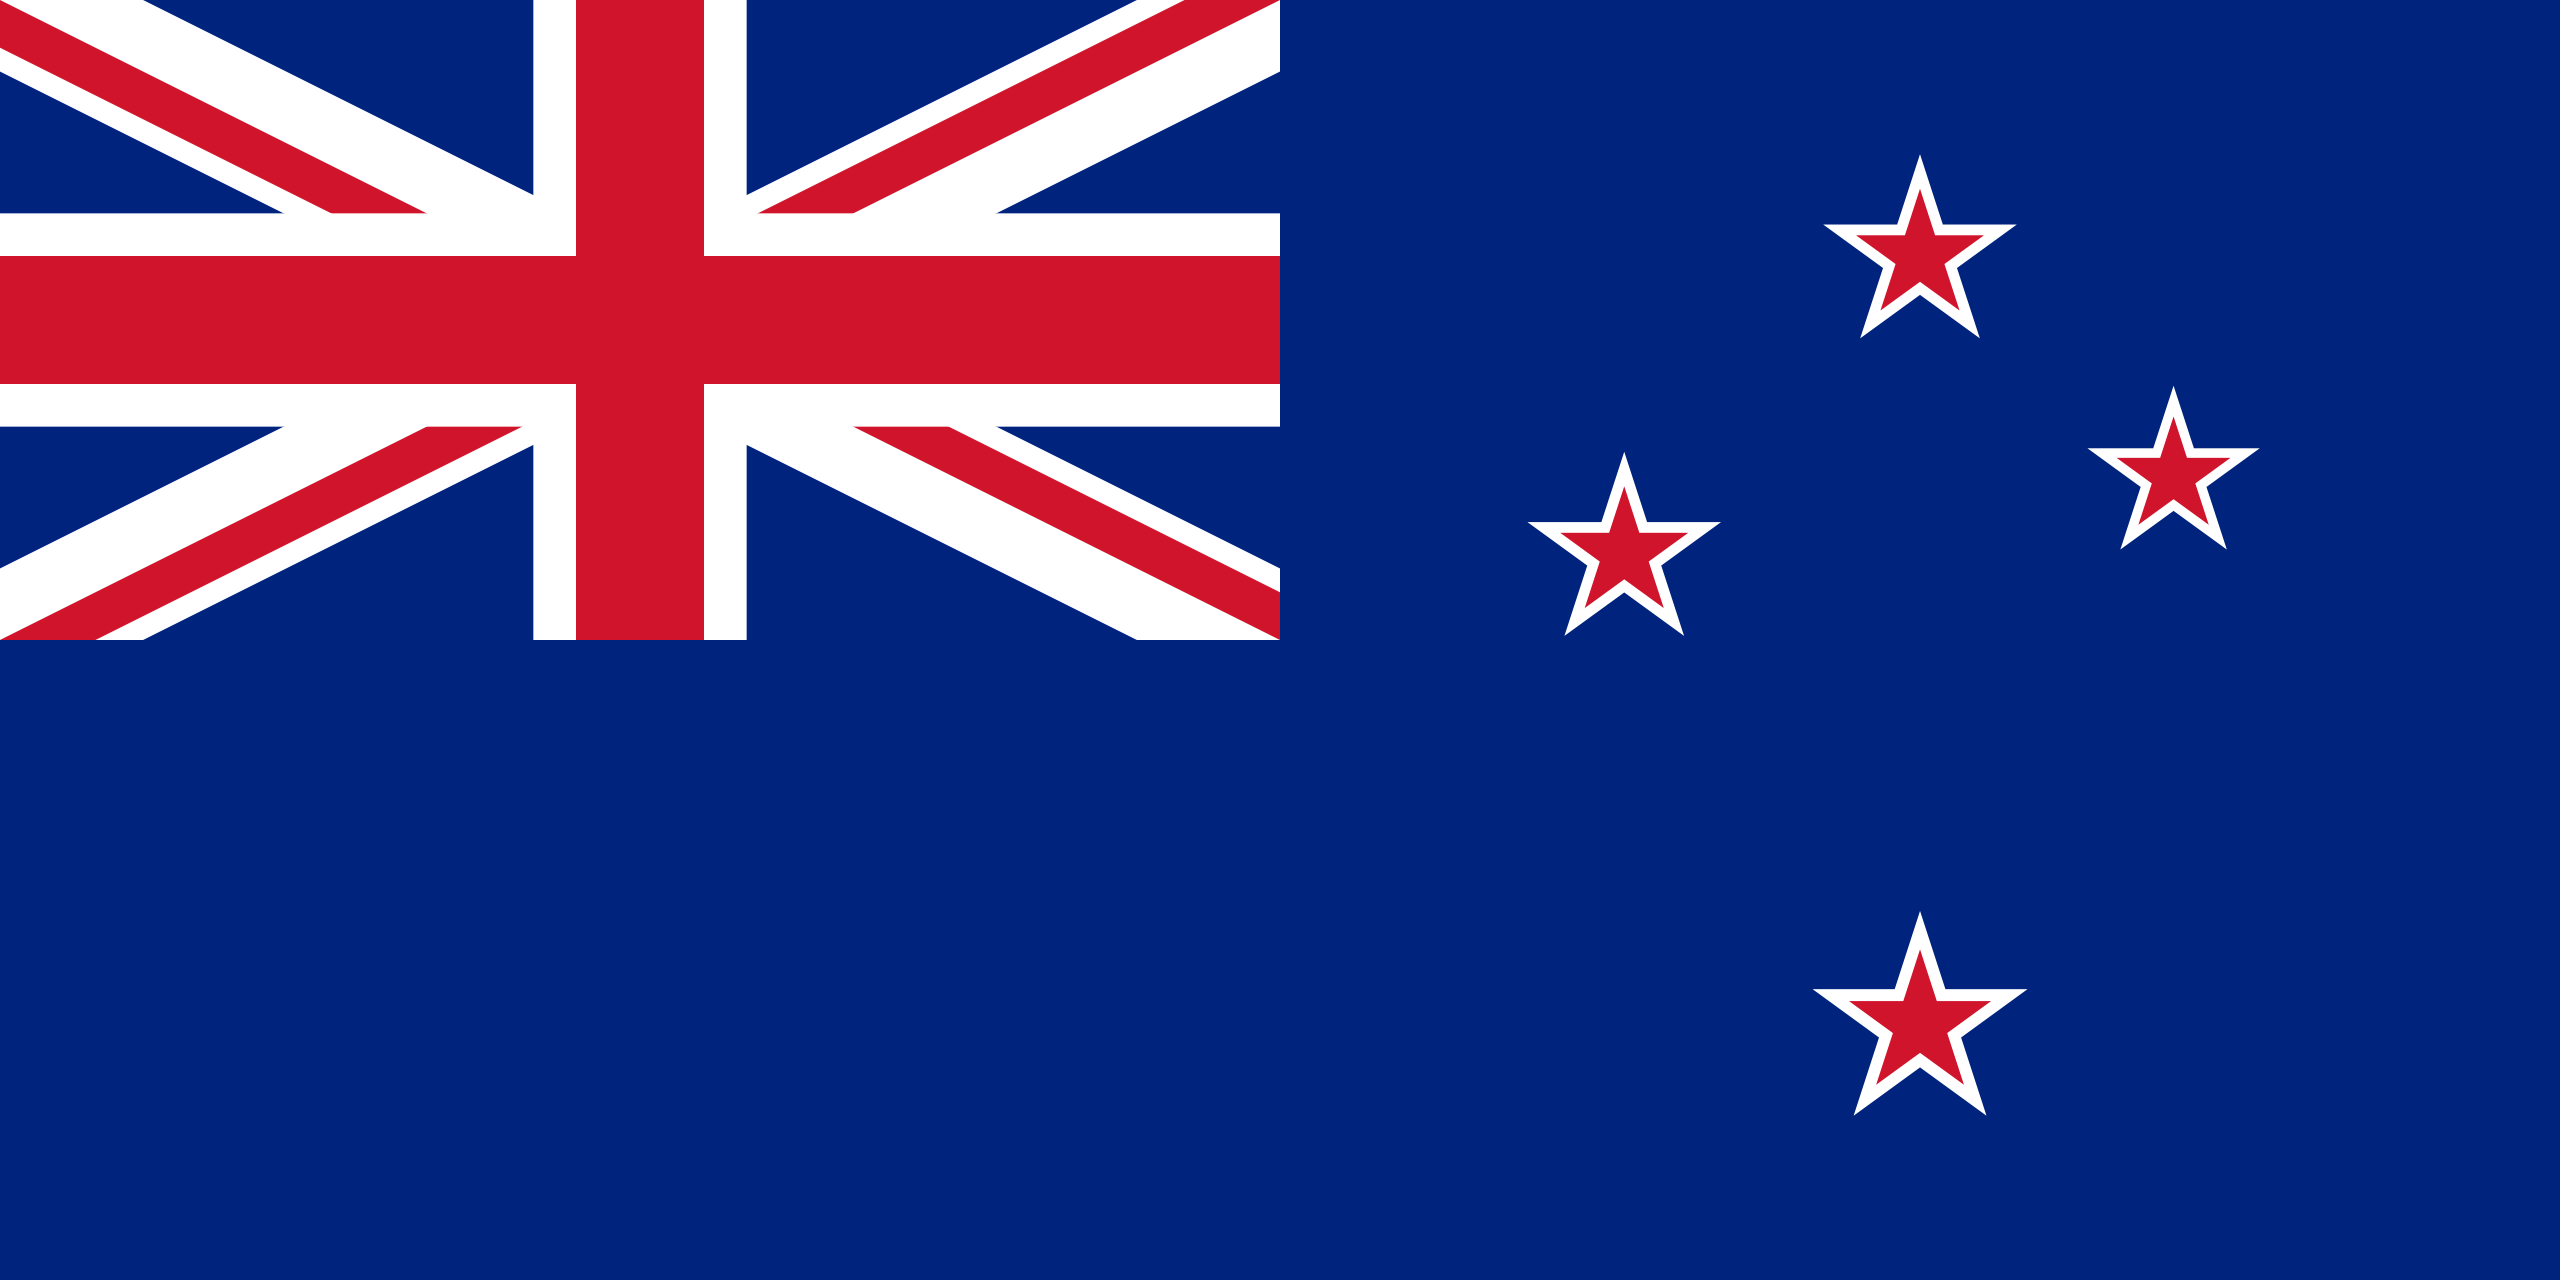 https://aerospaceexport.com/wp-content/uploads/2019/10/new-zealand.png